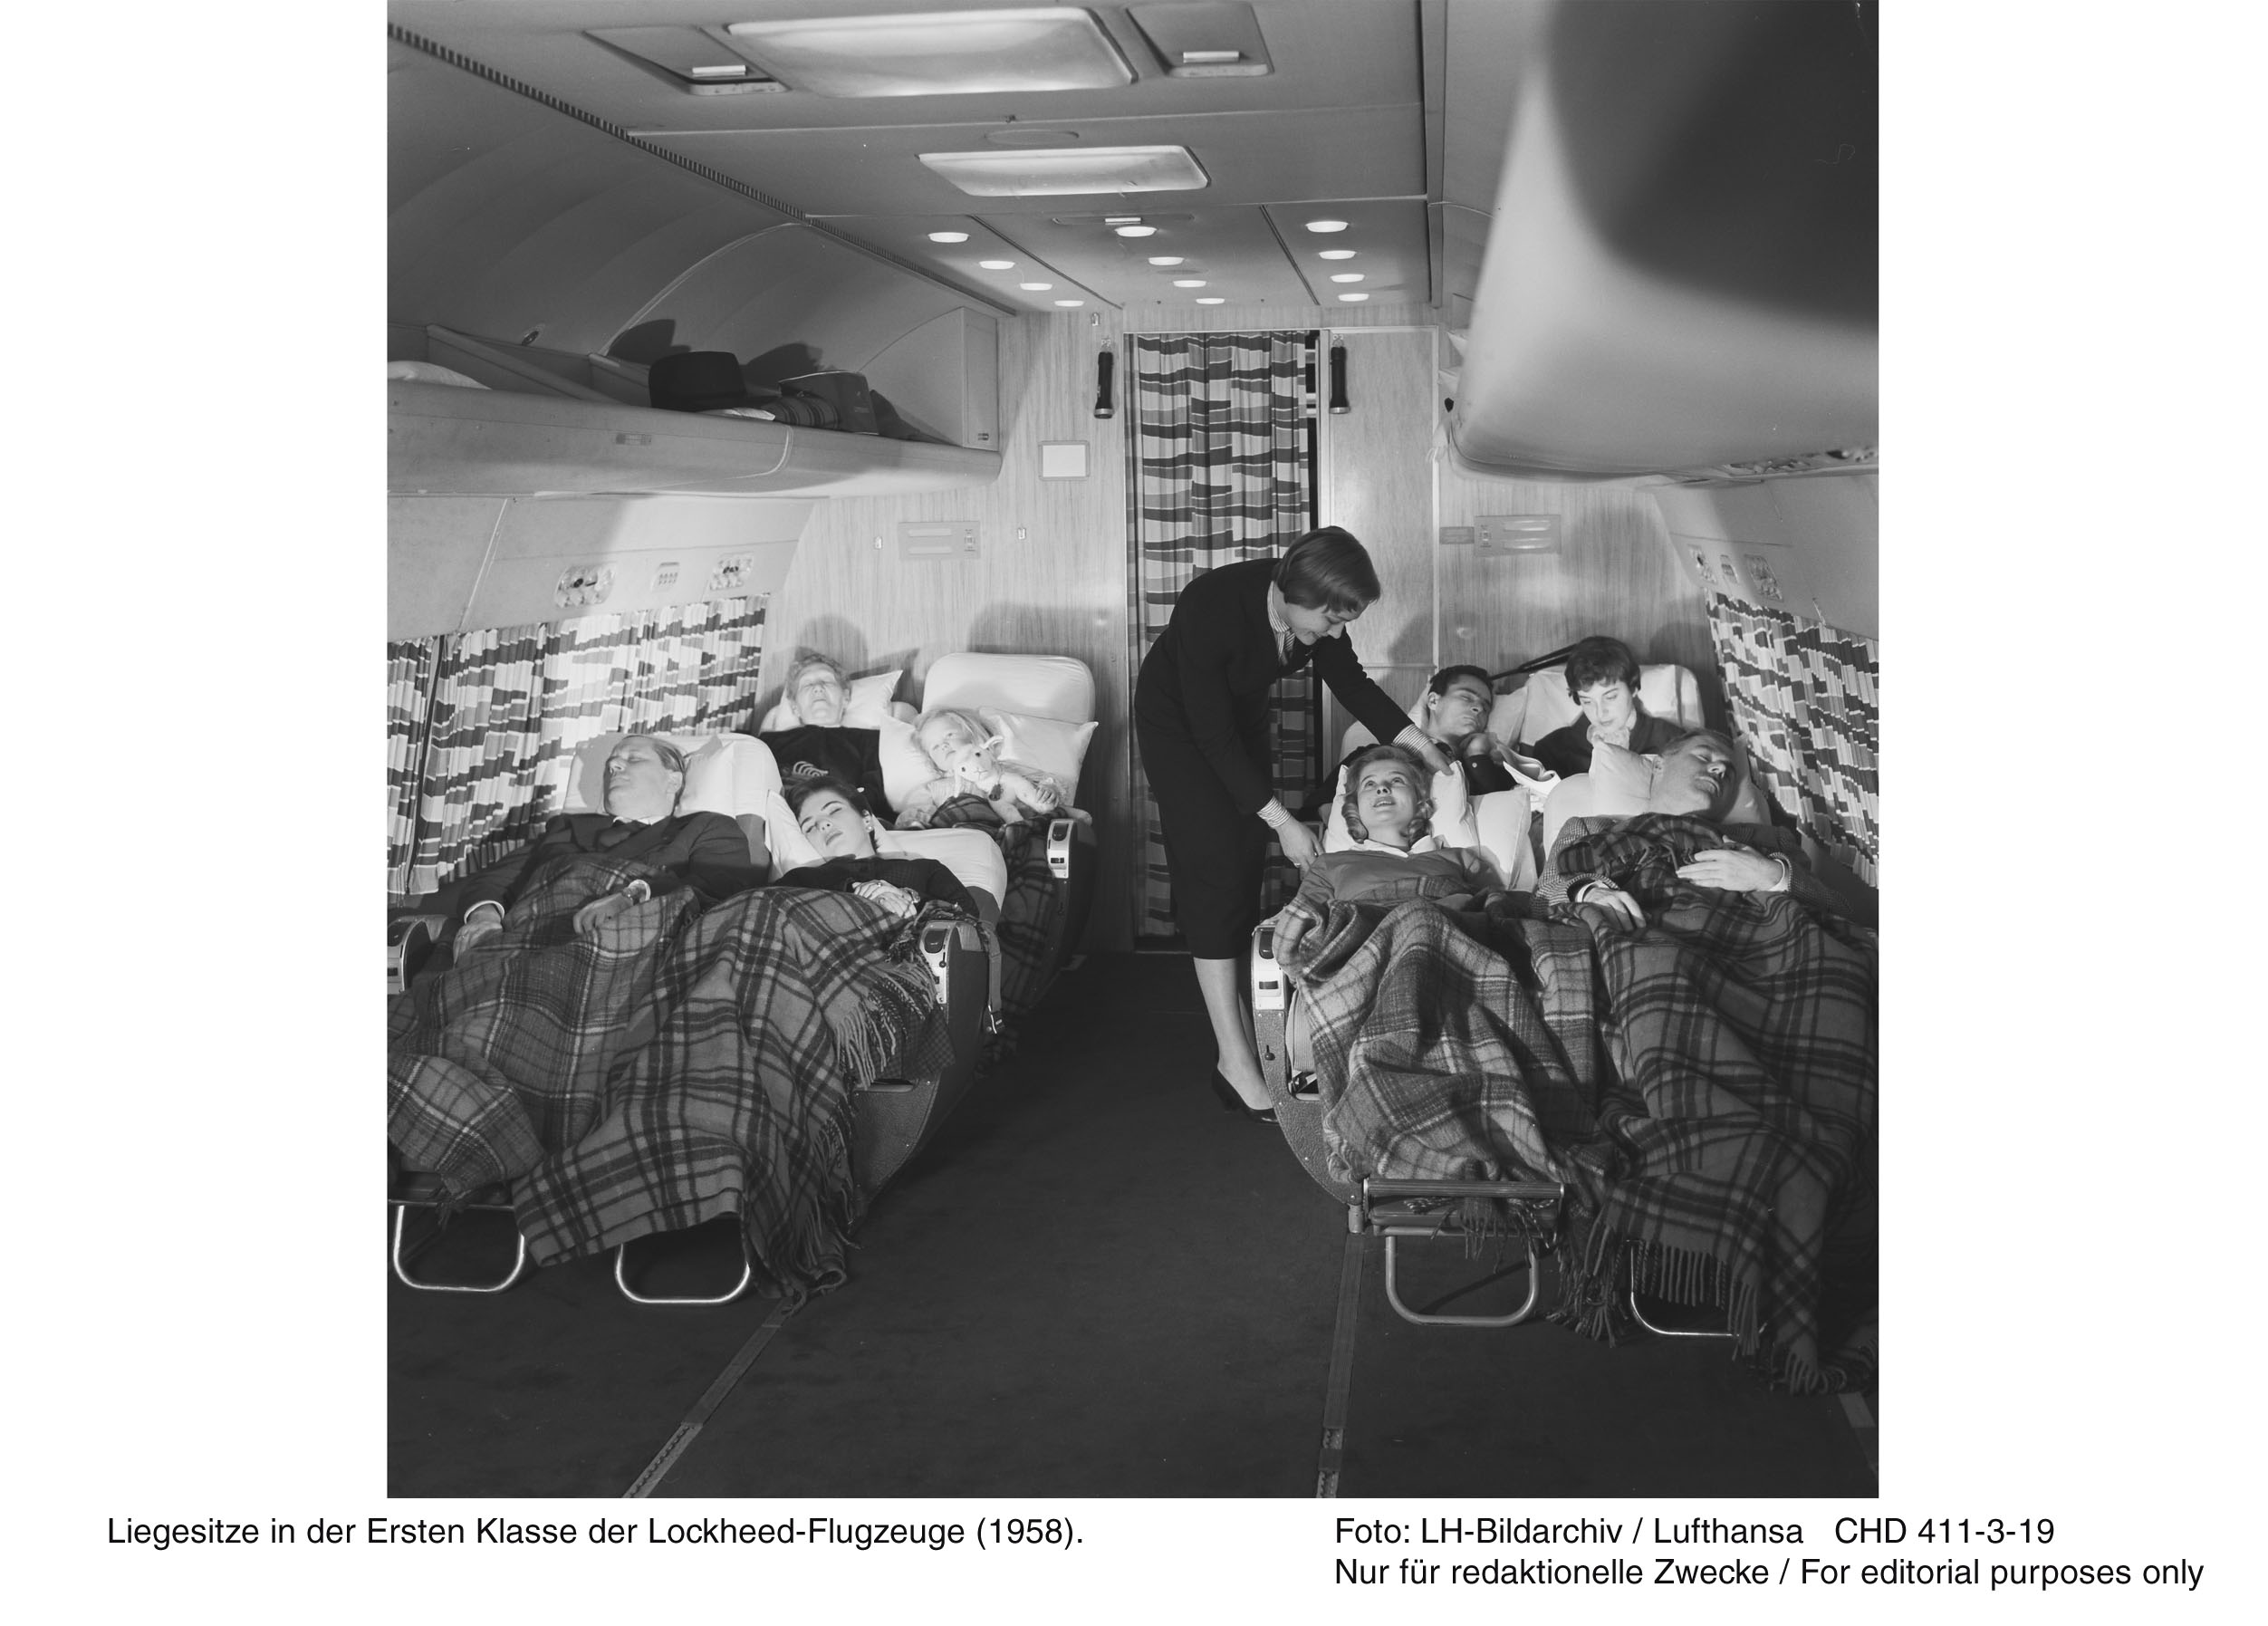 Another view of the 1st class cabin in a Lufthansa Lockheed L-1649A Super Star showing the reclining seats in action. (photo via Wolfgang Borgmann)